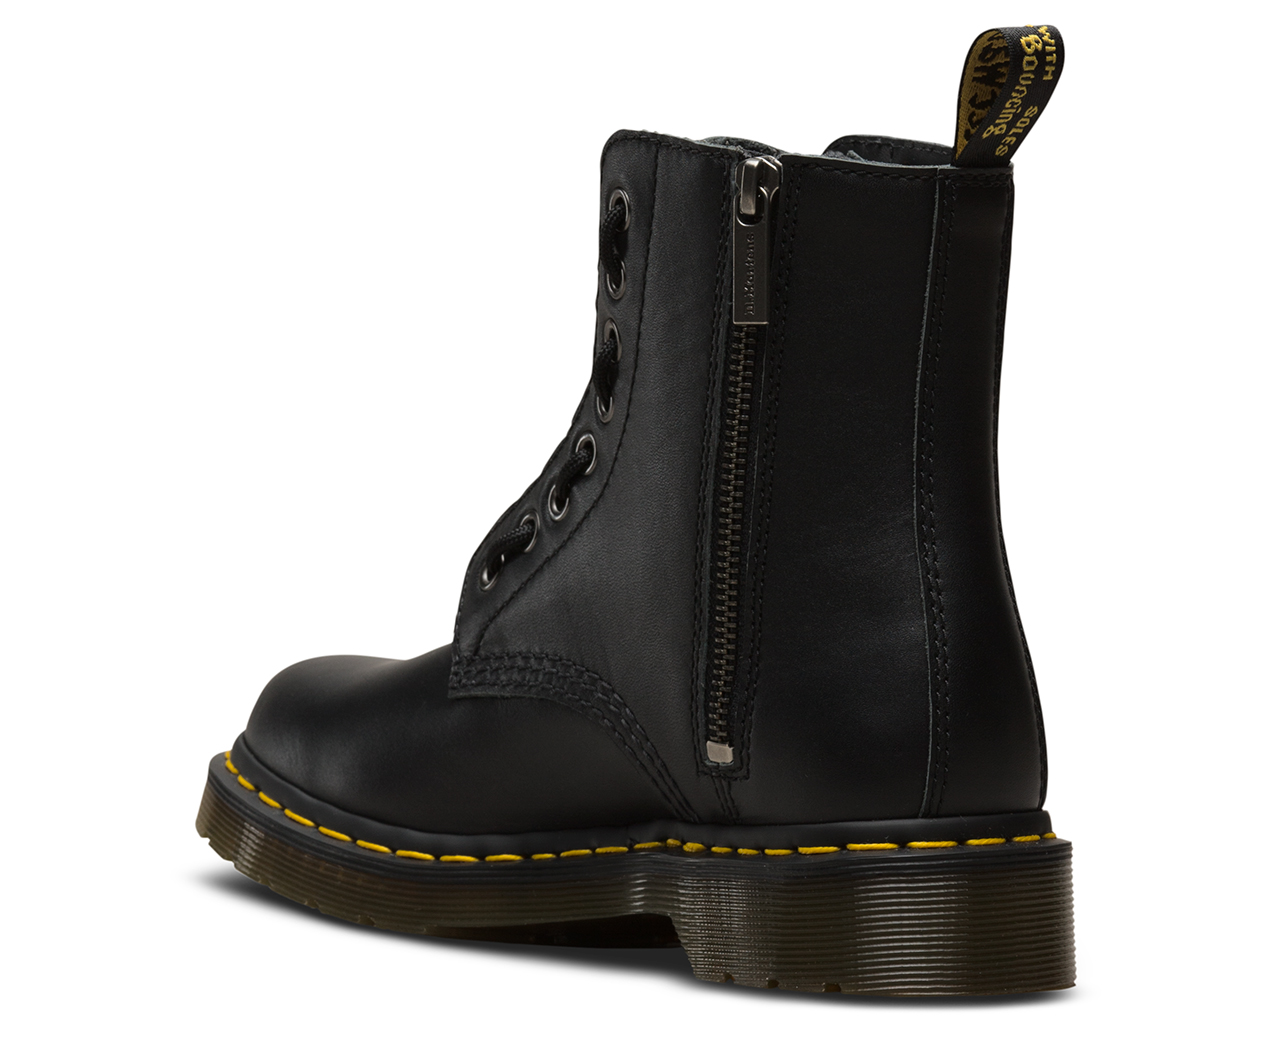 00ed7020e 1460 PASCAL FRONT ZIP NAPPA | Women's Boots | Dr. Martens Official